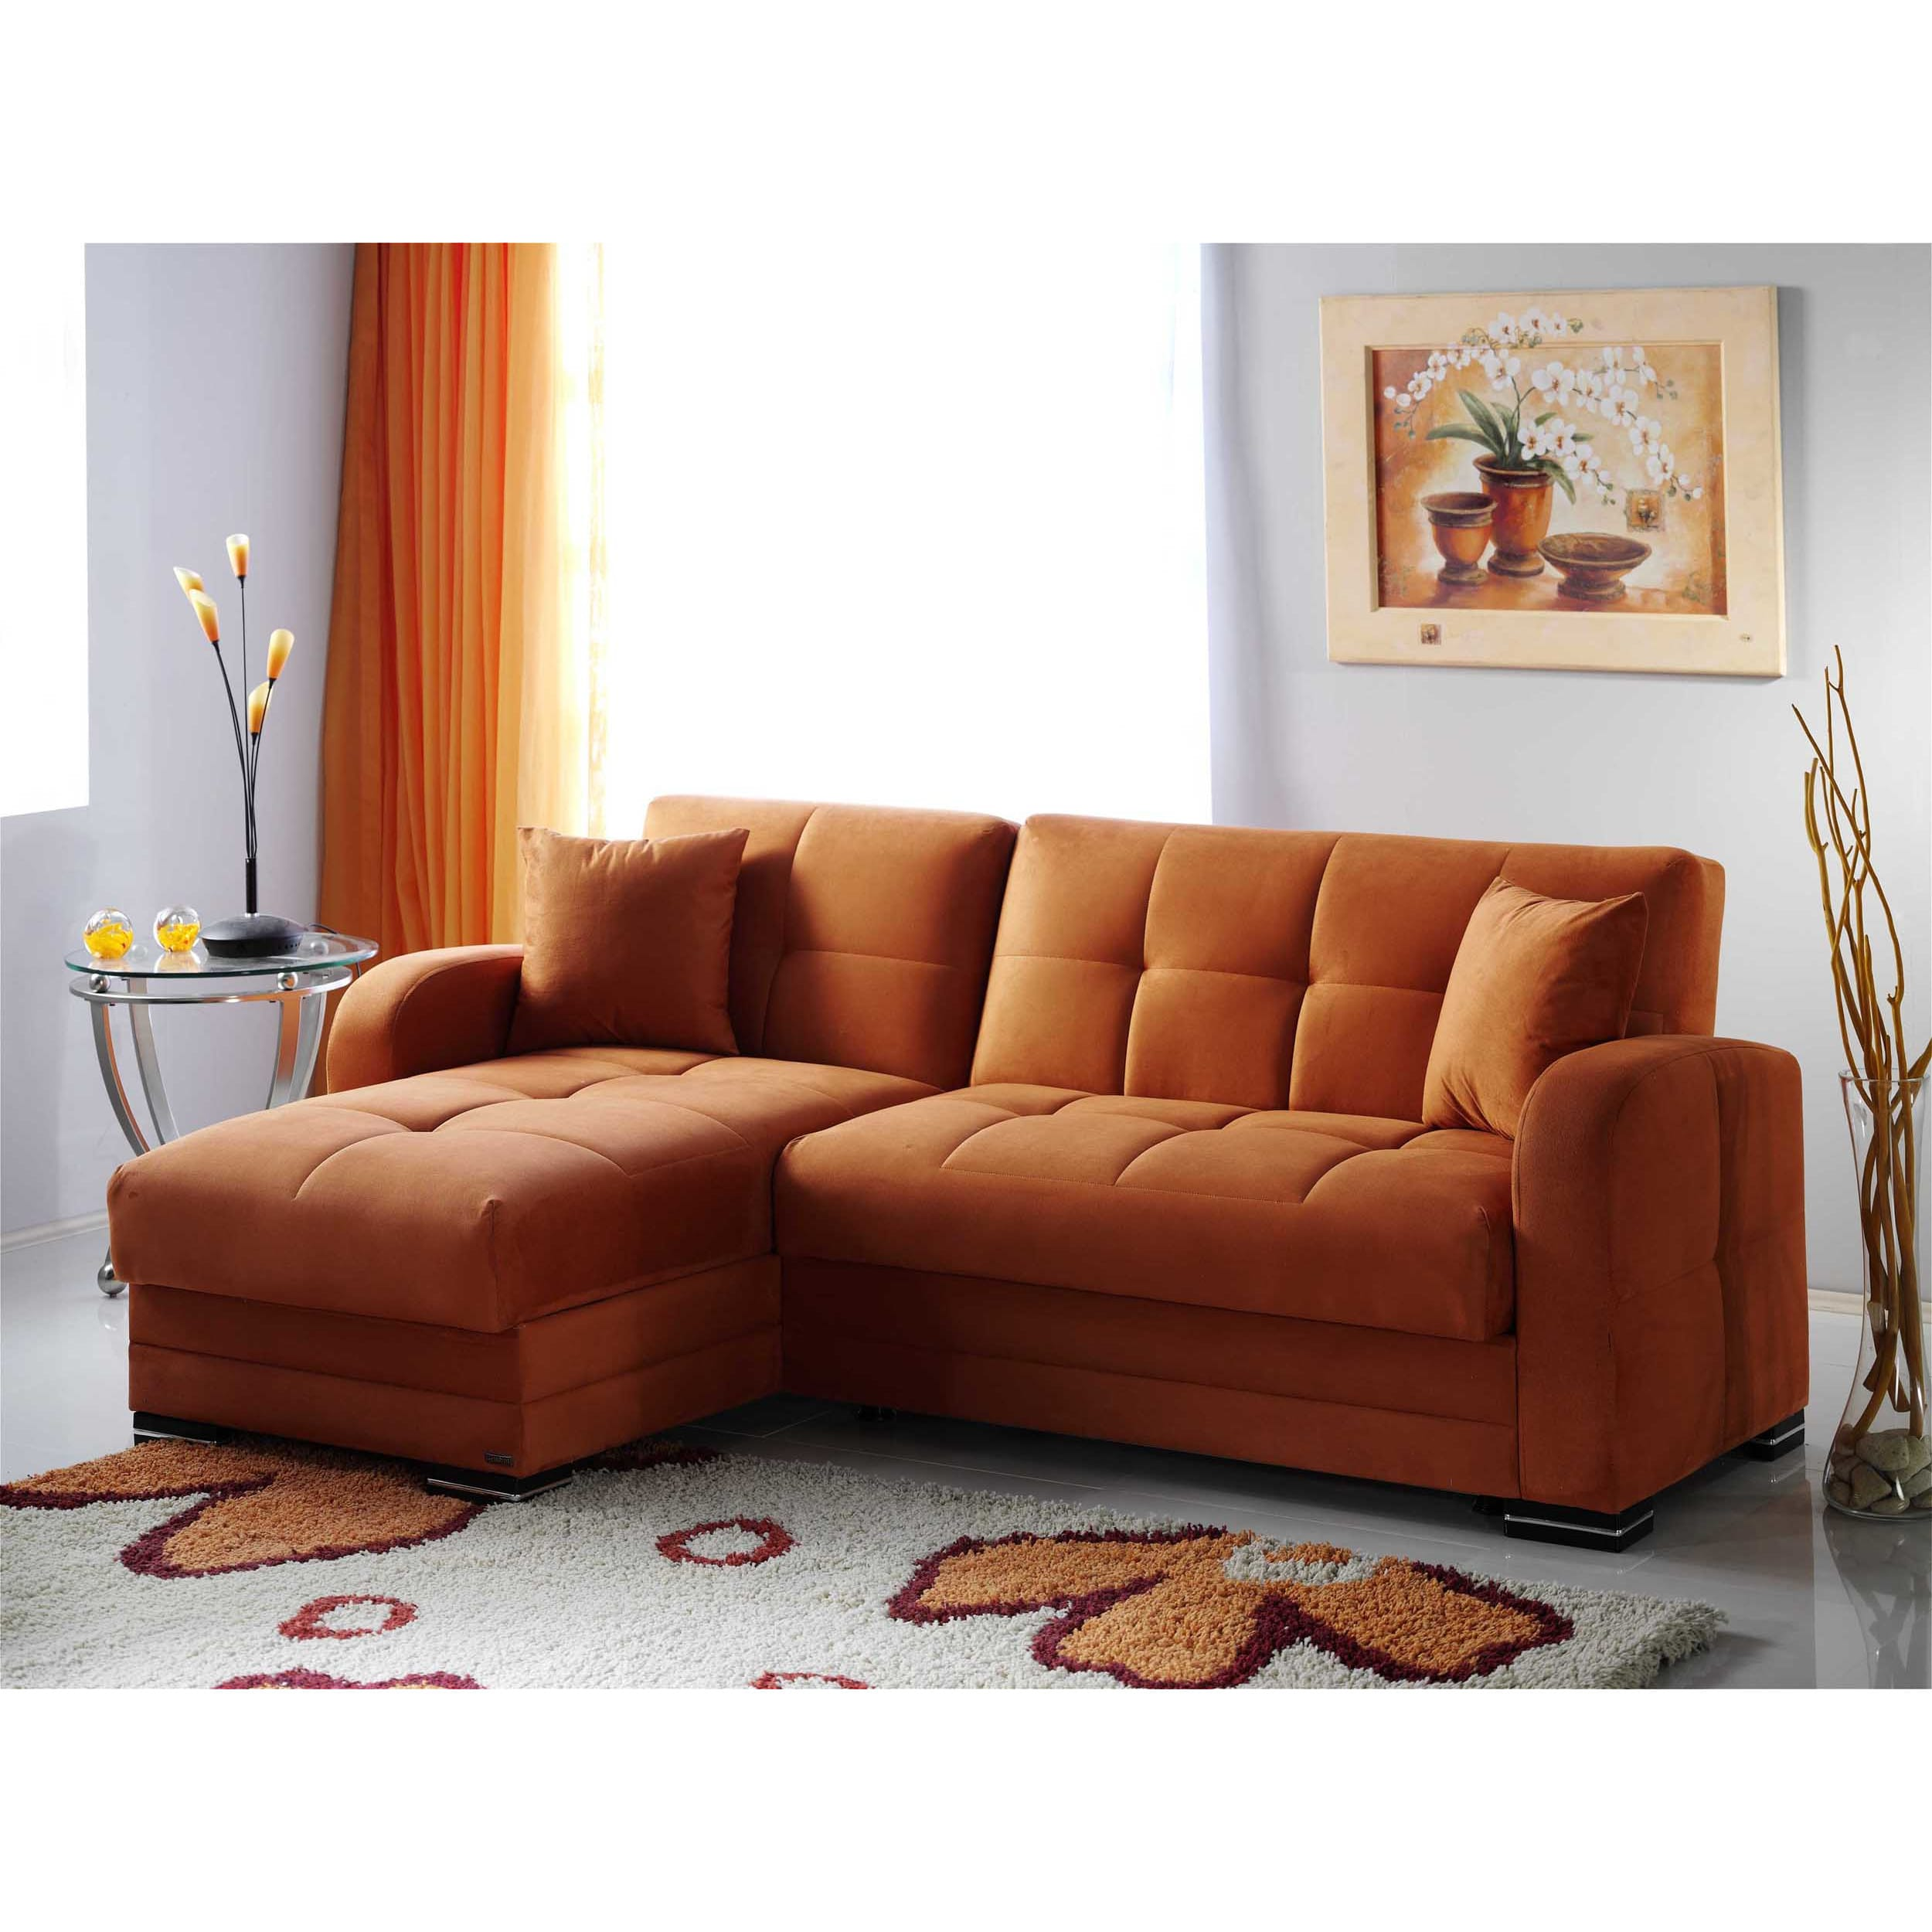 Kubo rainbow orange sectional sofa by istikbal sunset for Sofa orange